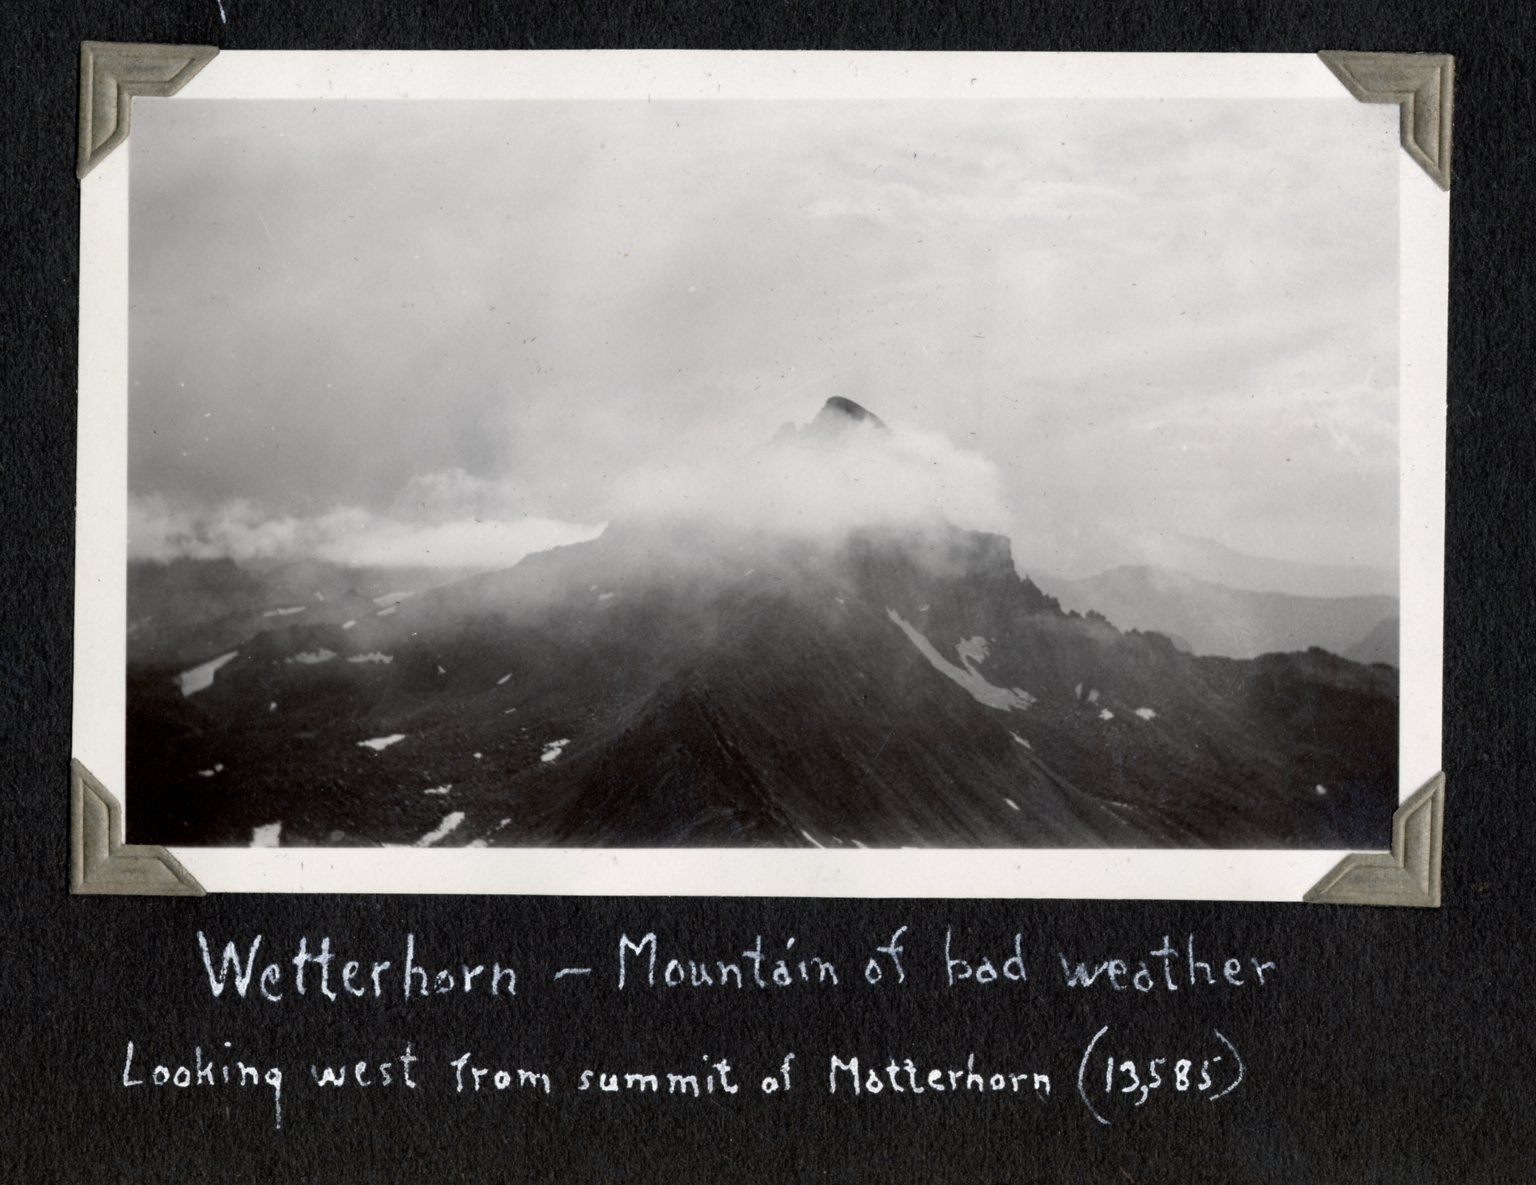 Wetterhorn Peak, seen from Matterhorn summit